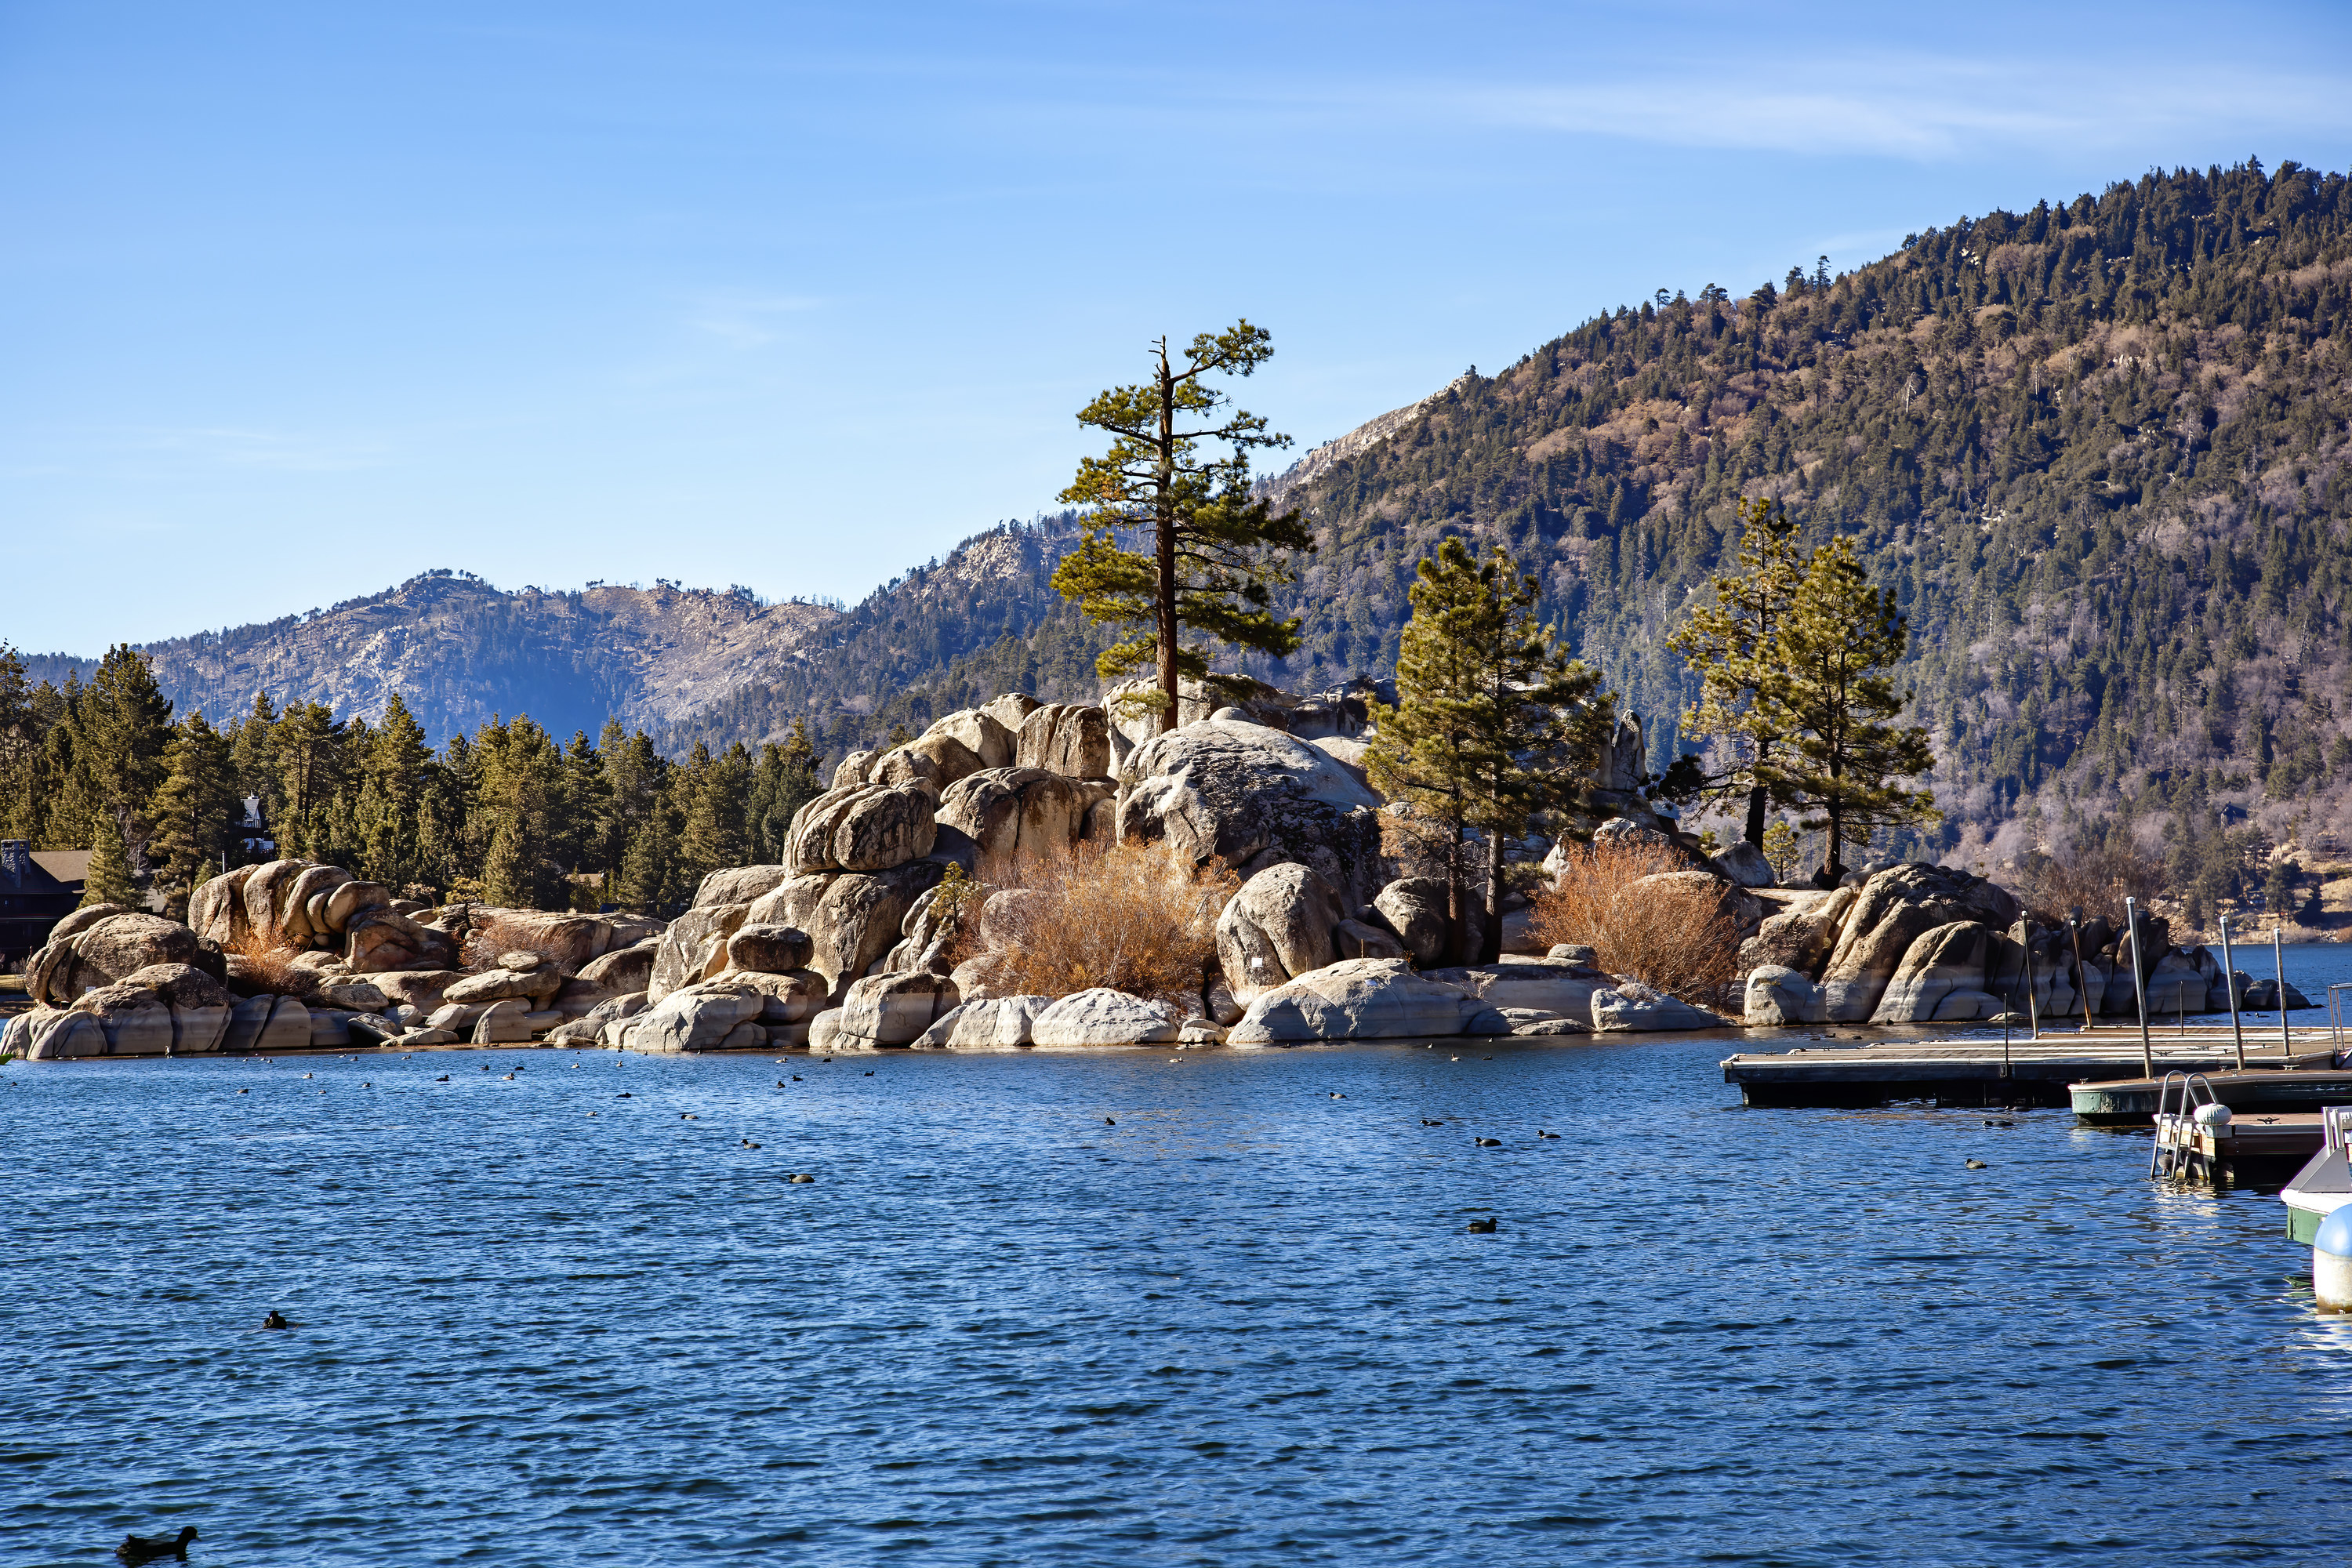 View of mountains and rock formations along Big Bear Lake